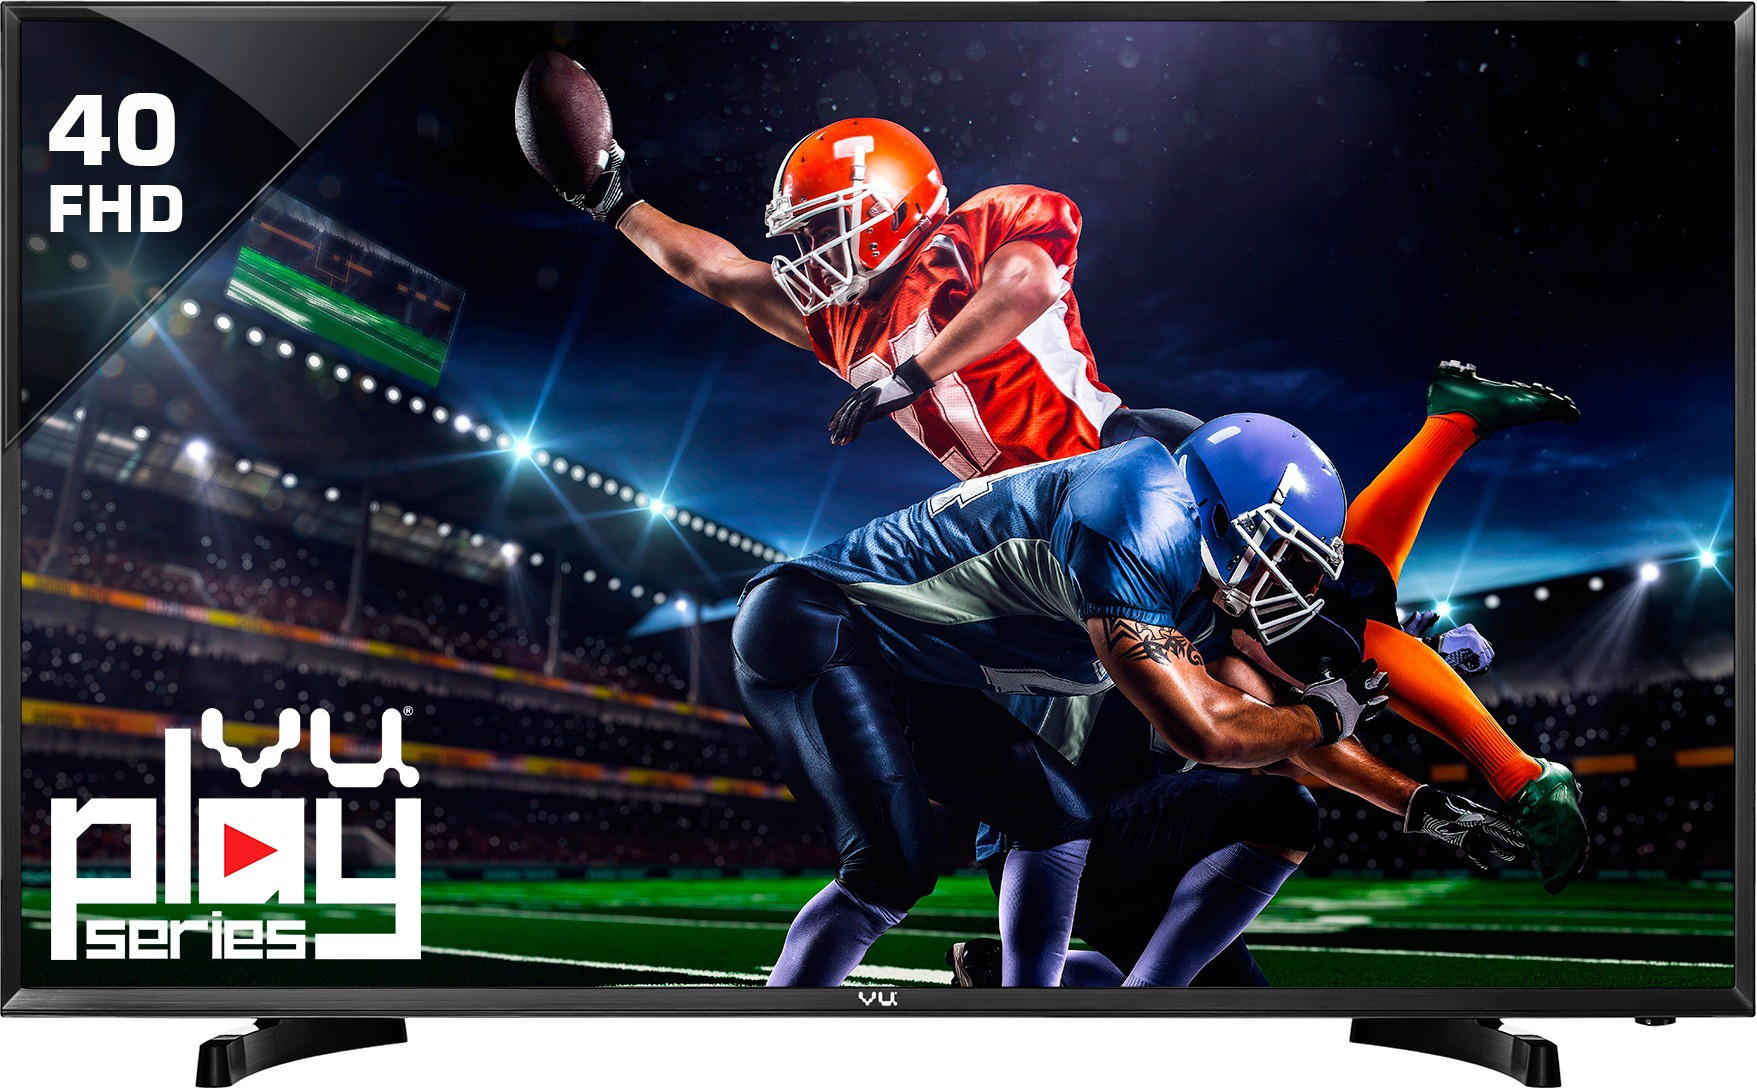 Deals | From ₹18,990 Best Deals On 40 Inch TVs